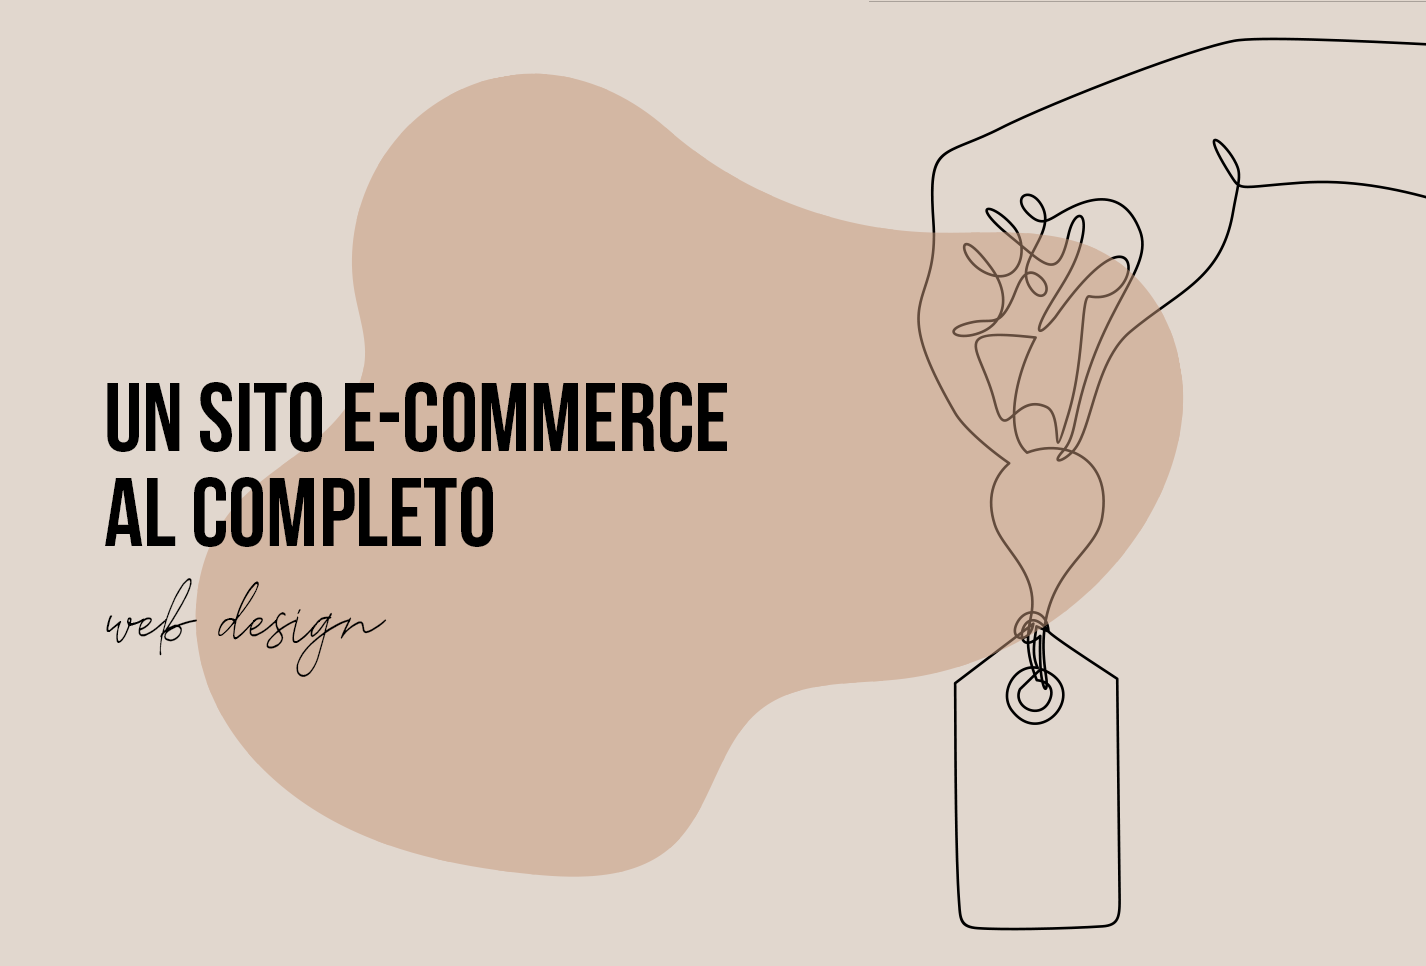 Un sito e-commerce al completo